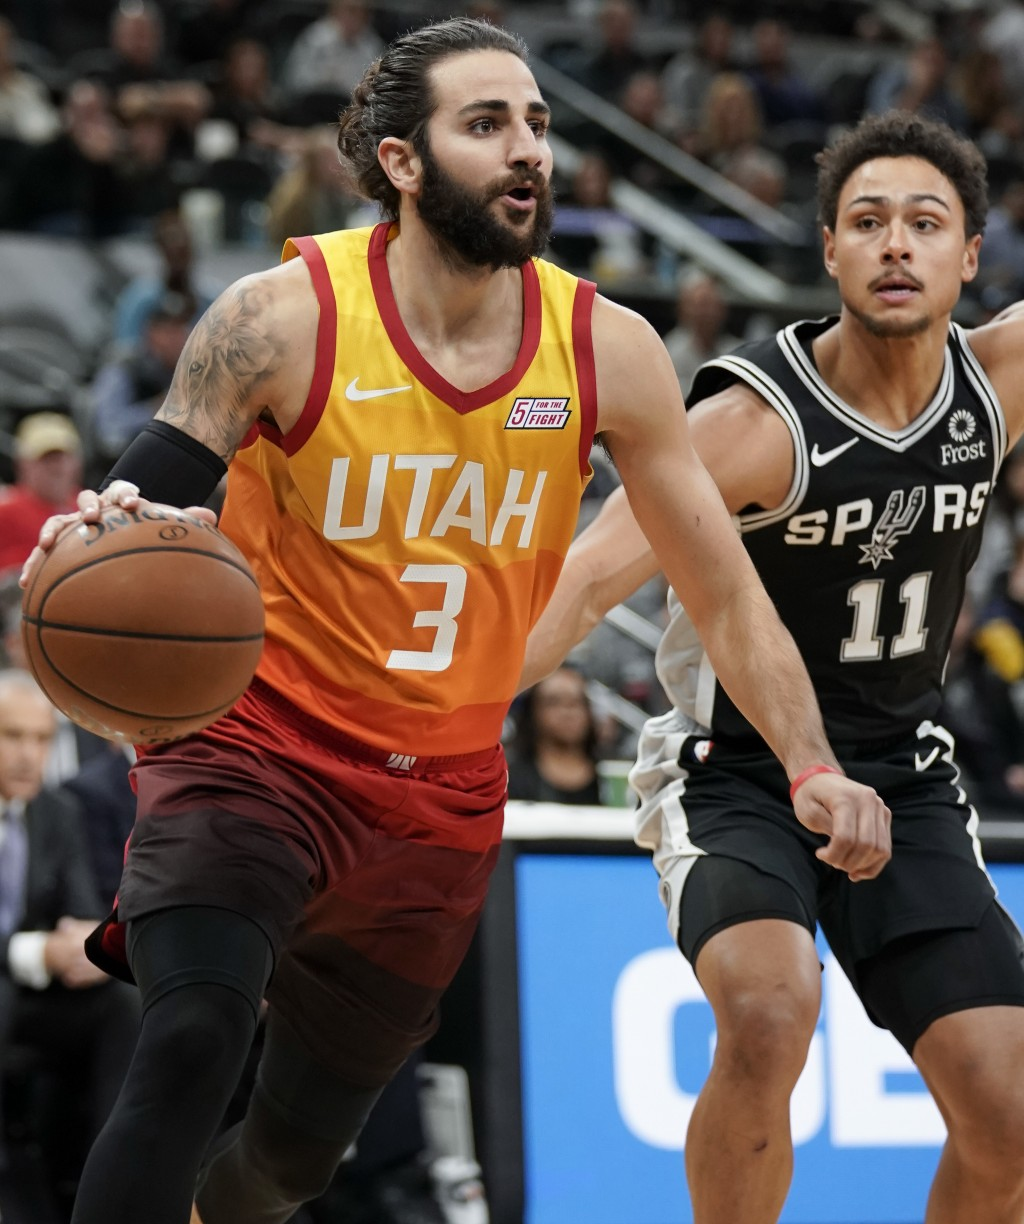 Utah Jazz guard Ricky Rubio (3) drives around San Antonio Spurs guard Bryn Forbes during the first half of an NBA basketball game, Sunday, Dec. 9, 201...